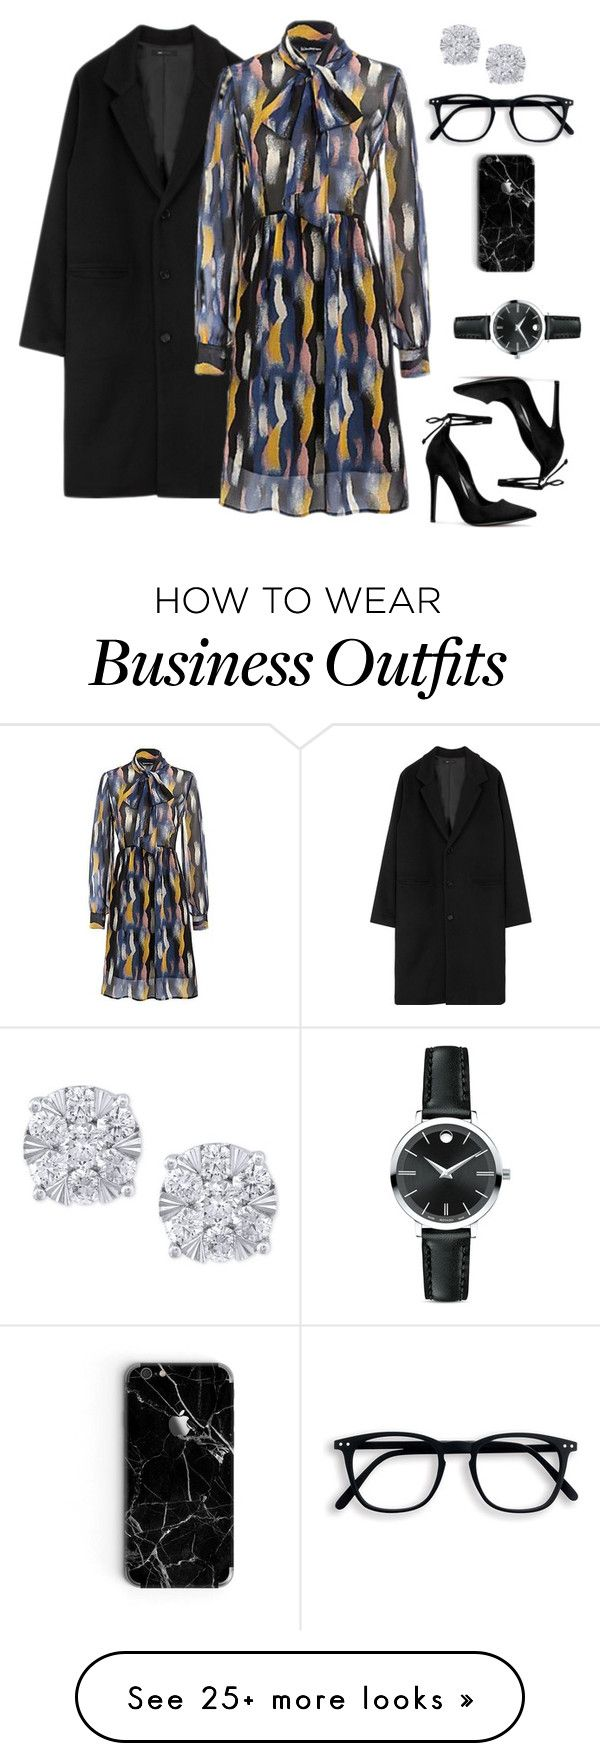 """""""Wear this to Work #1"""" by treceefab on Polyvore featuring Movado, Effy Jewelry, WorkWear and ootd"""